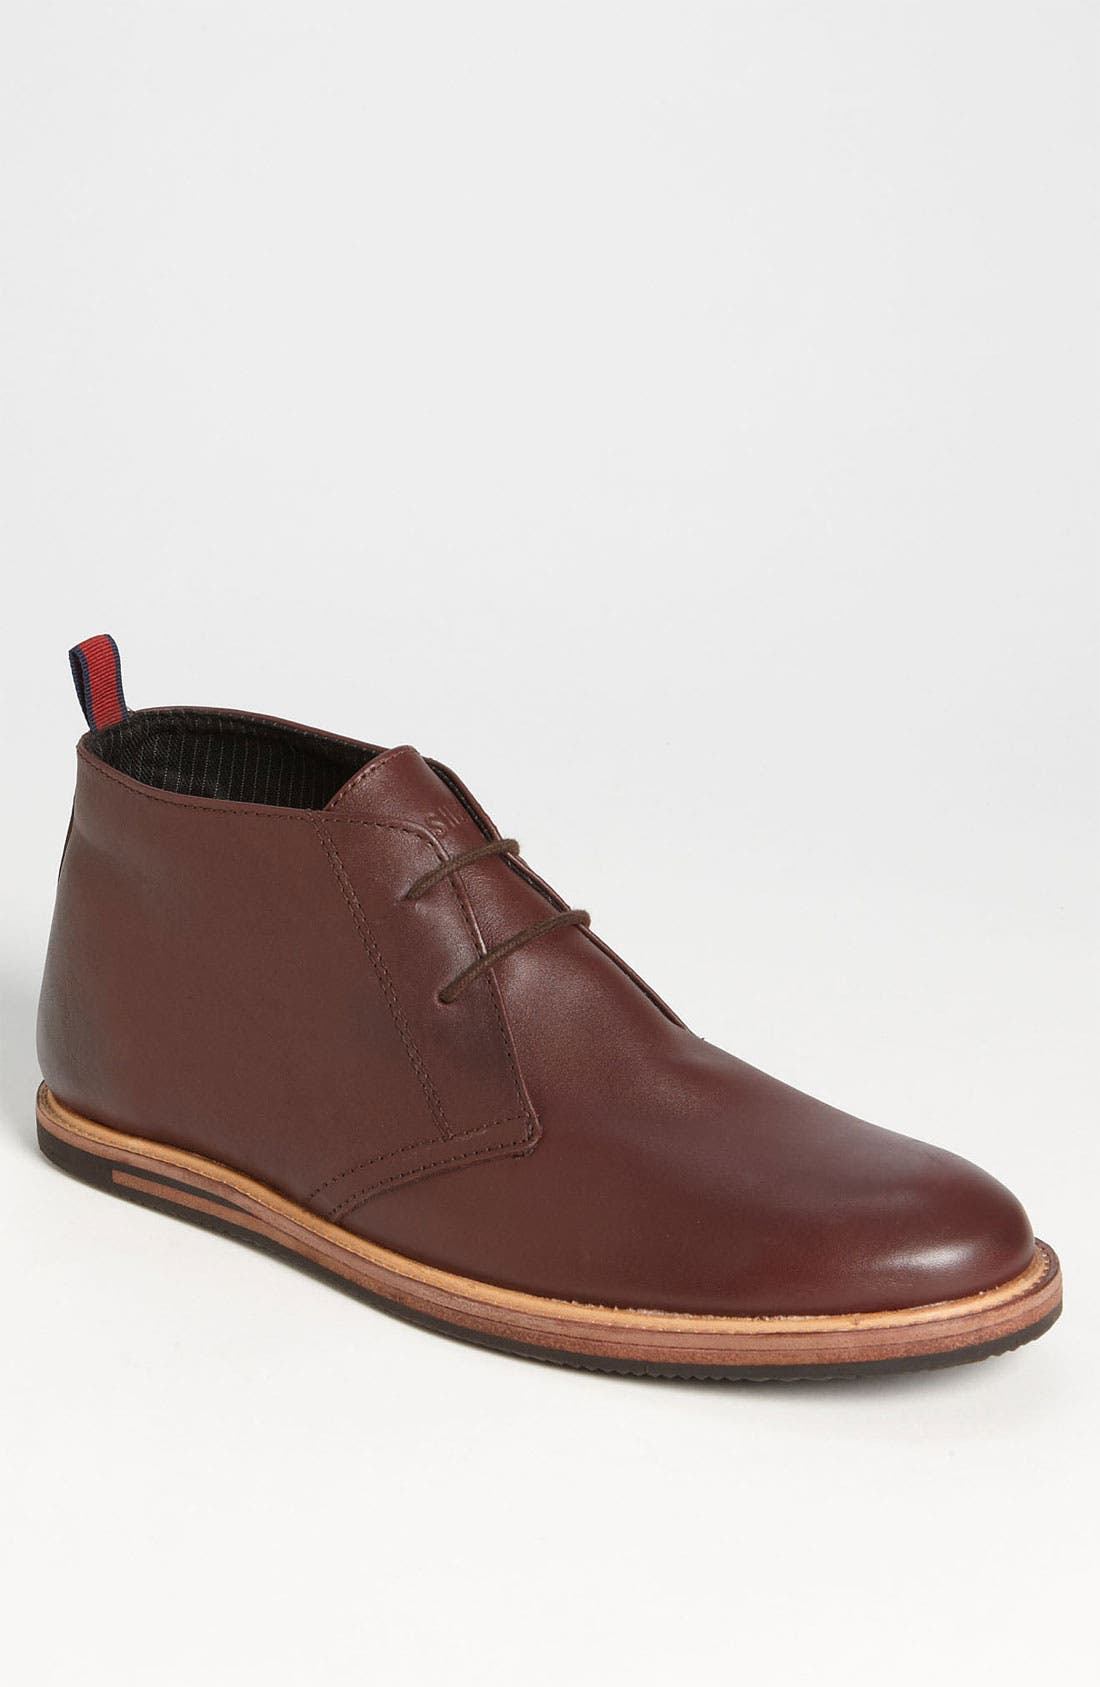 Alternate Image 1 Selected - Ben Sherman 'Aberdeen' Chukka Boot